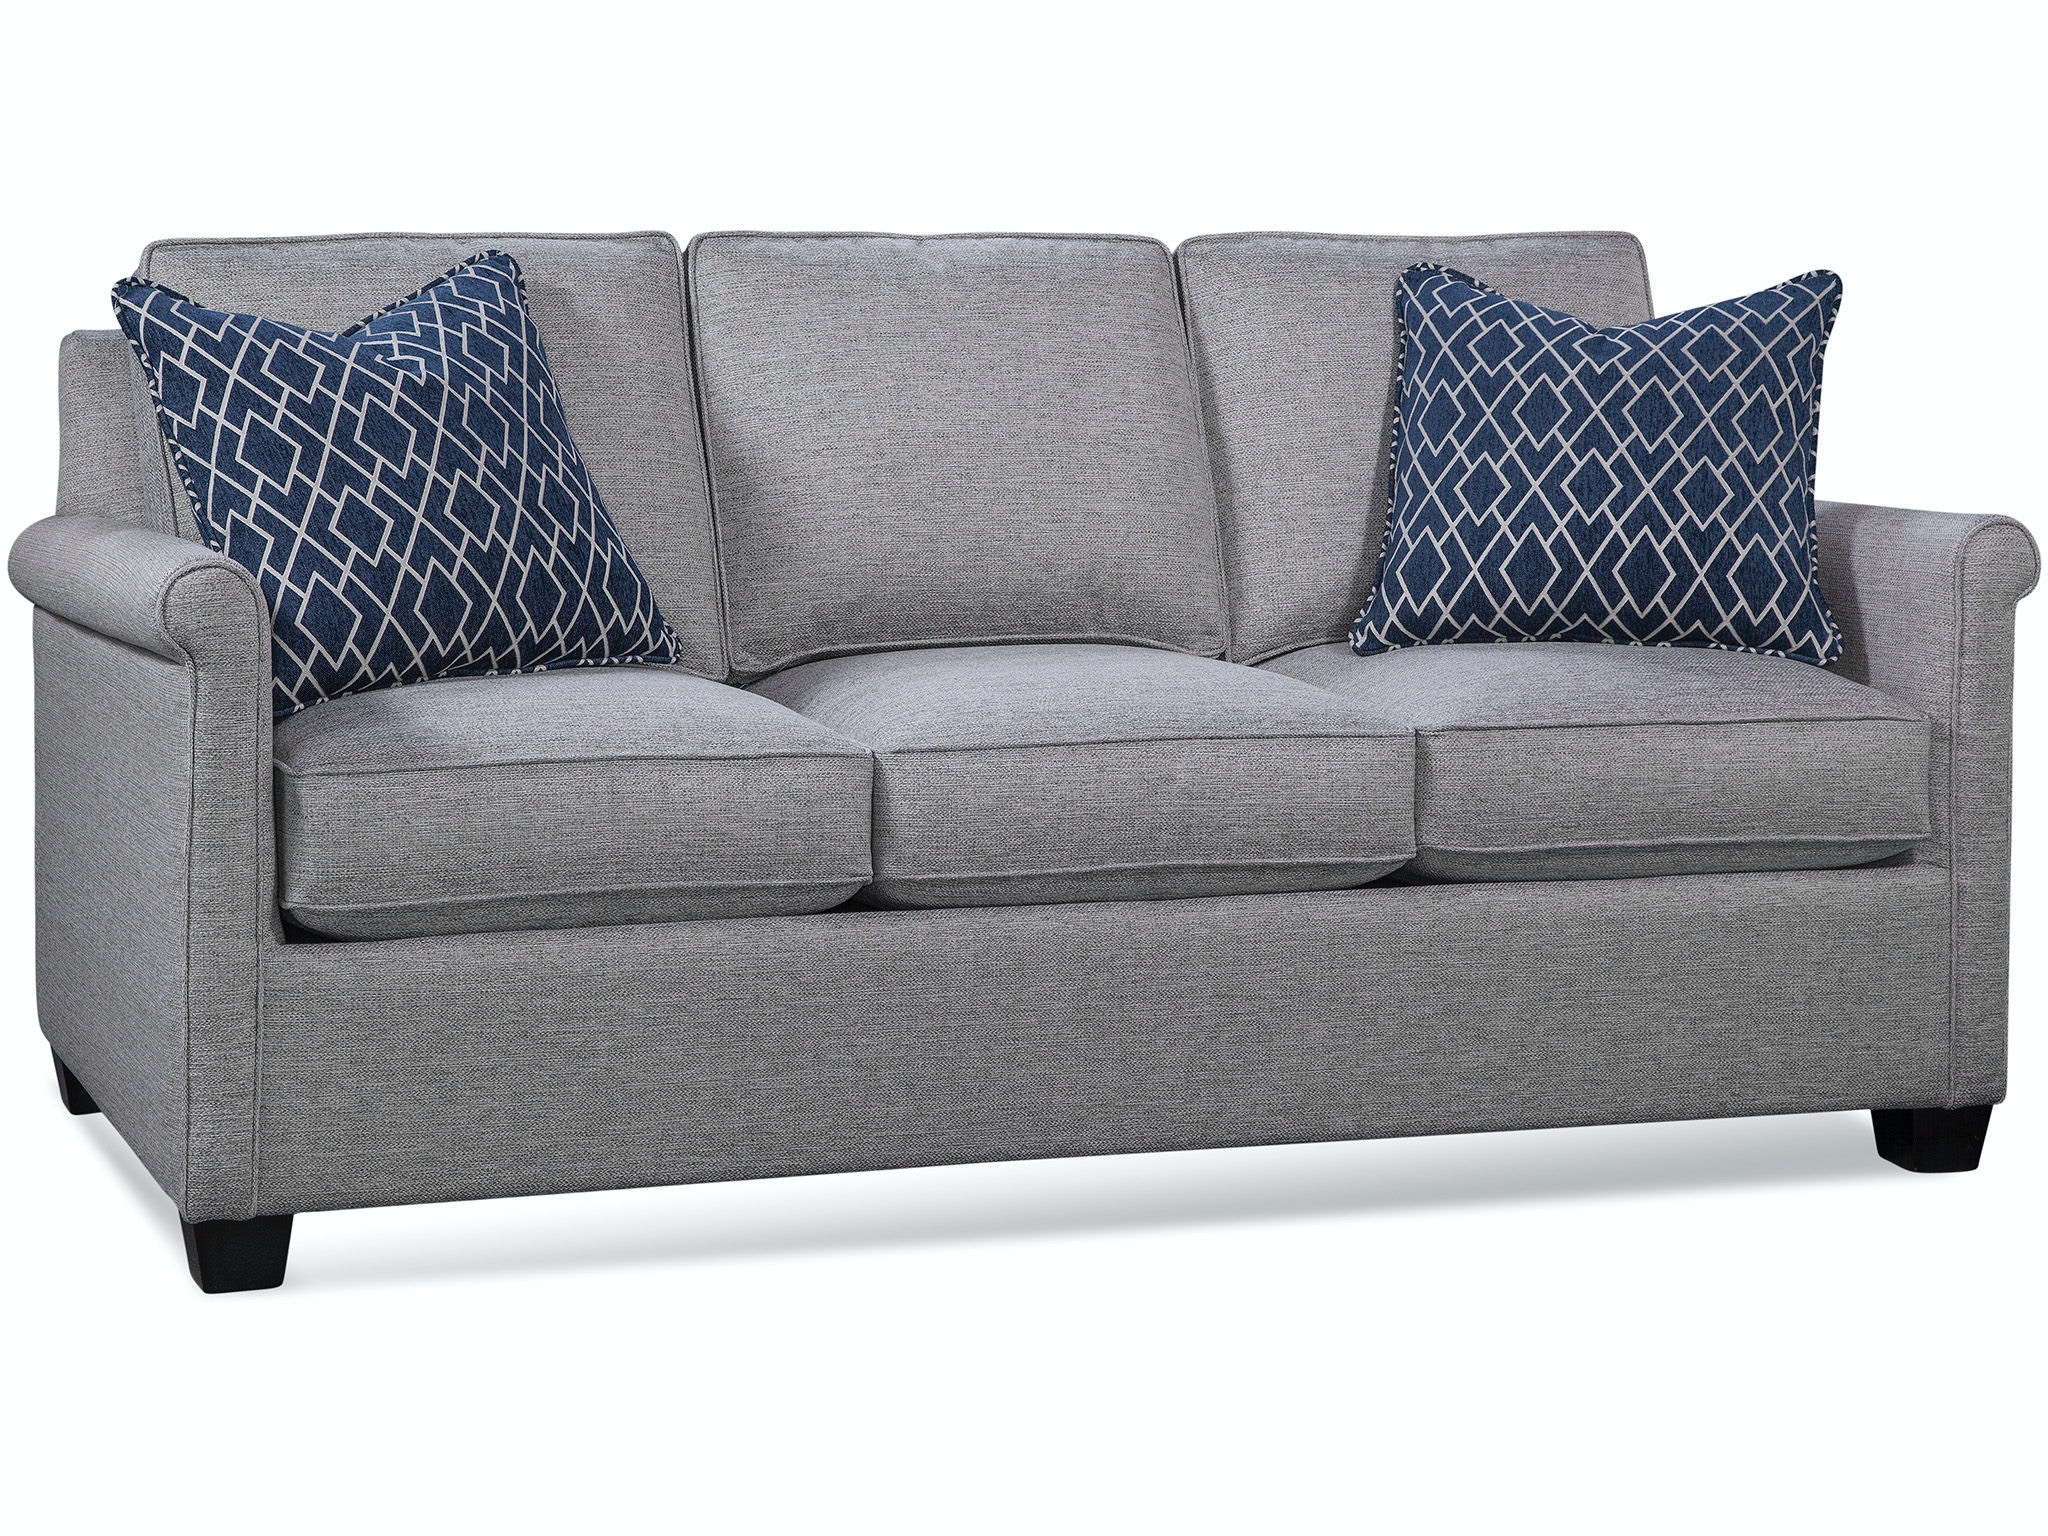 Braxton Culler Living Room Sofa 726 011 At Outer Banks Furniture